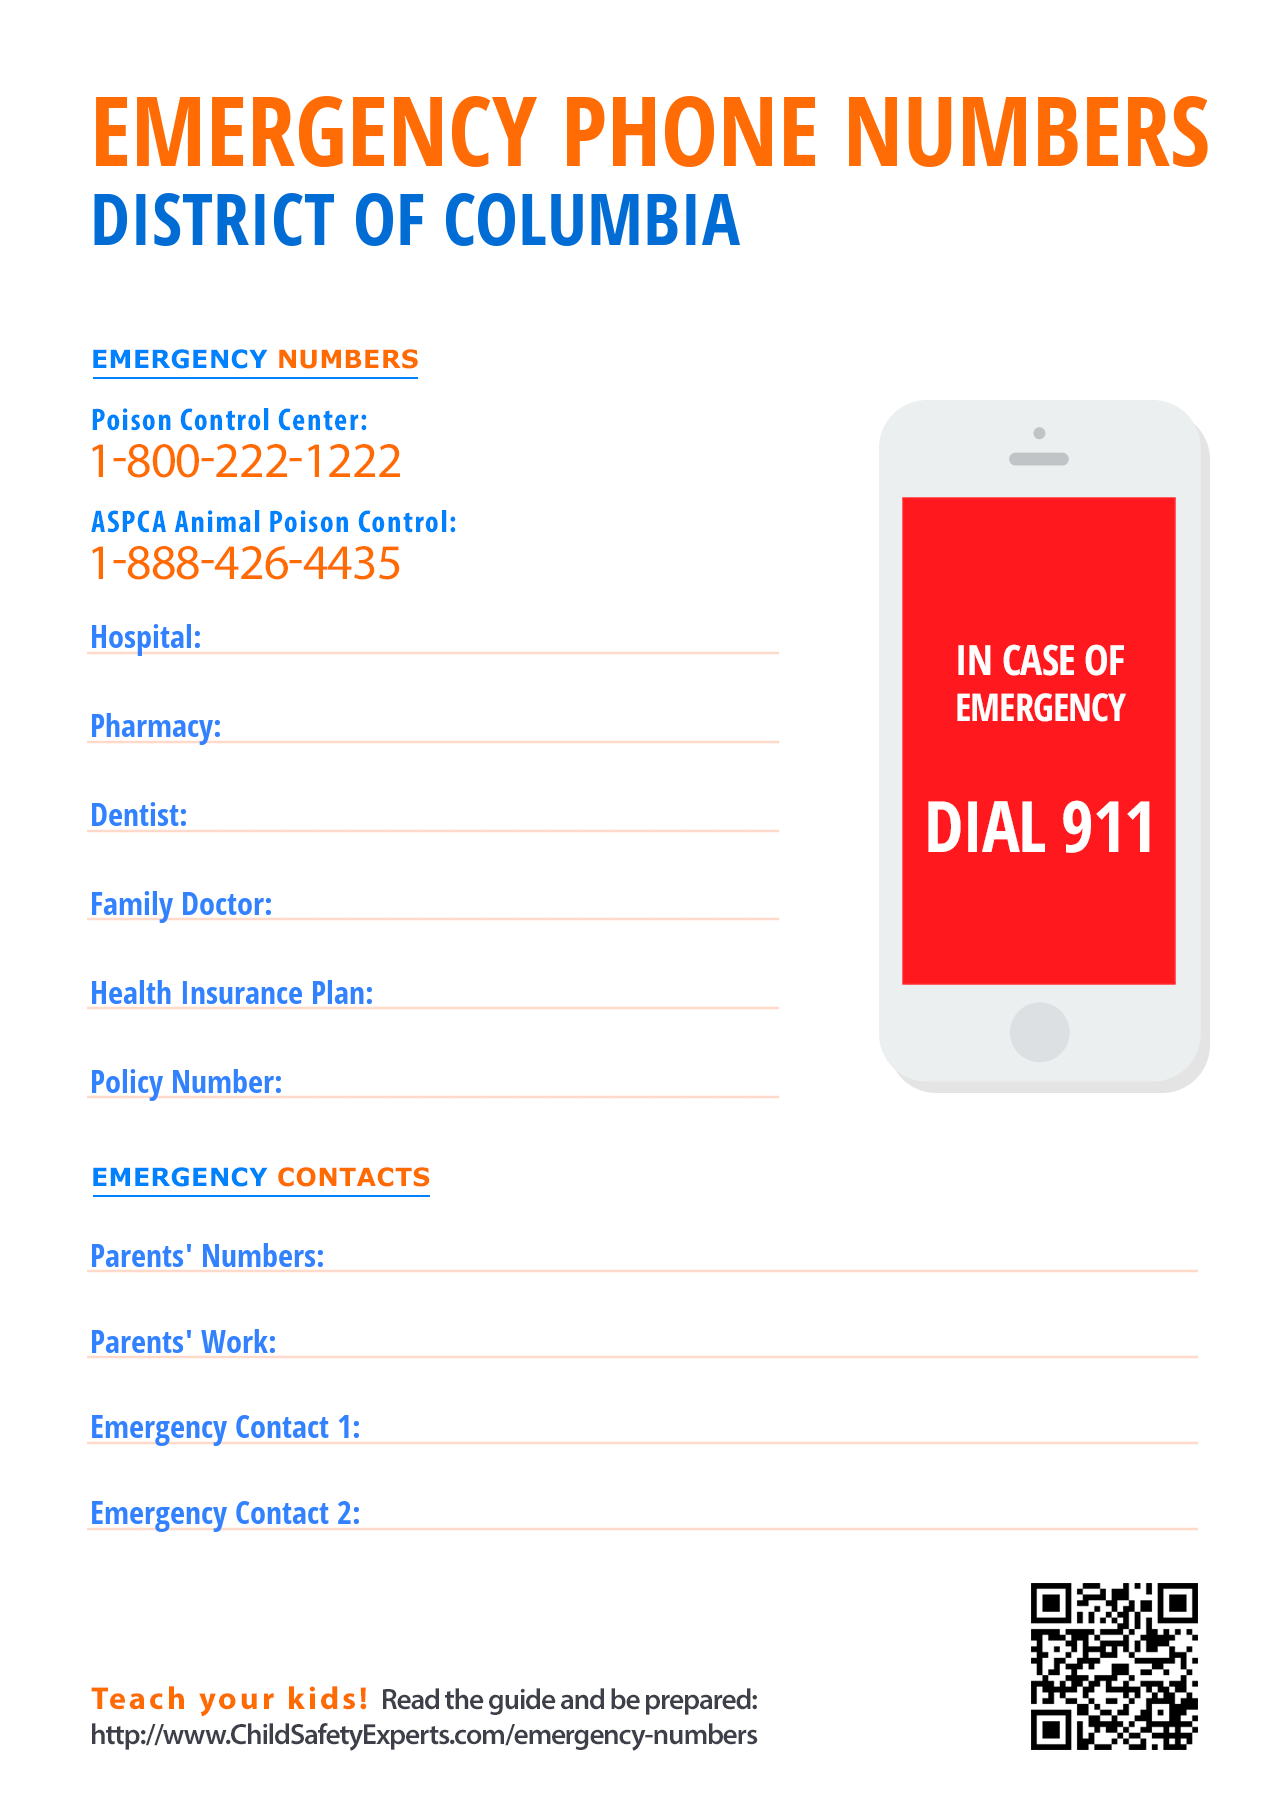 Important emergency phone numbers in District of Columbia